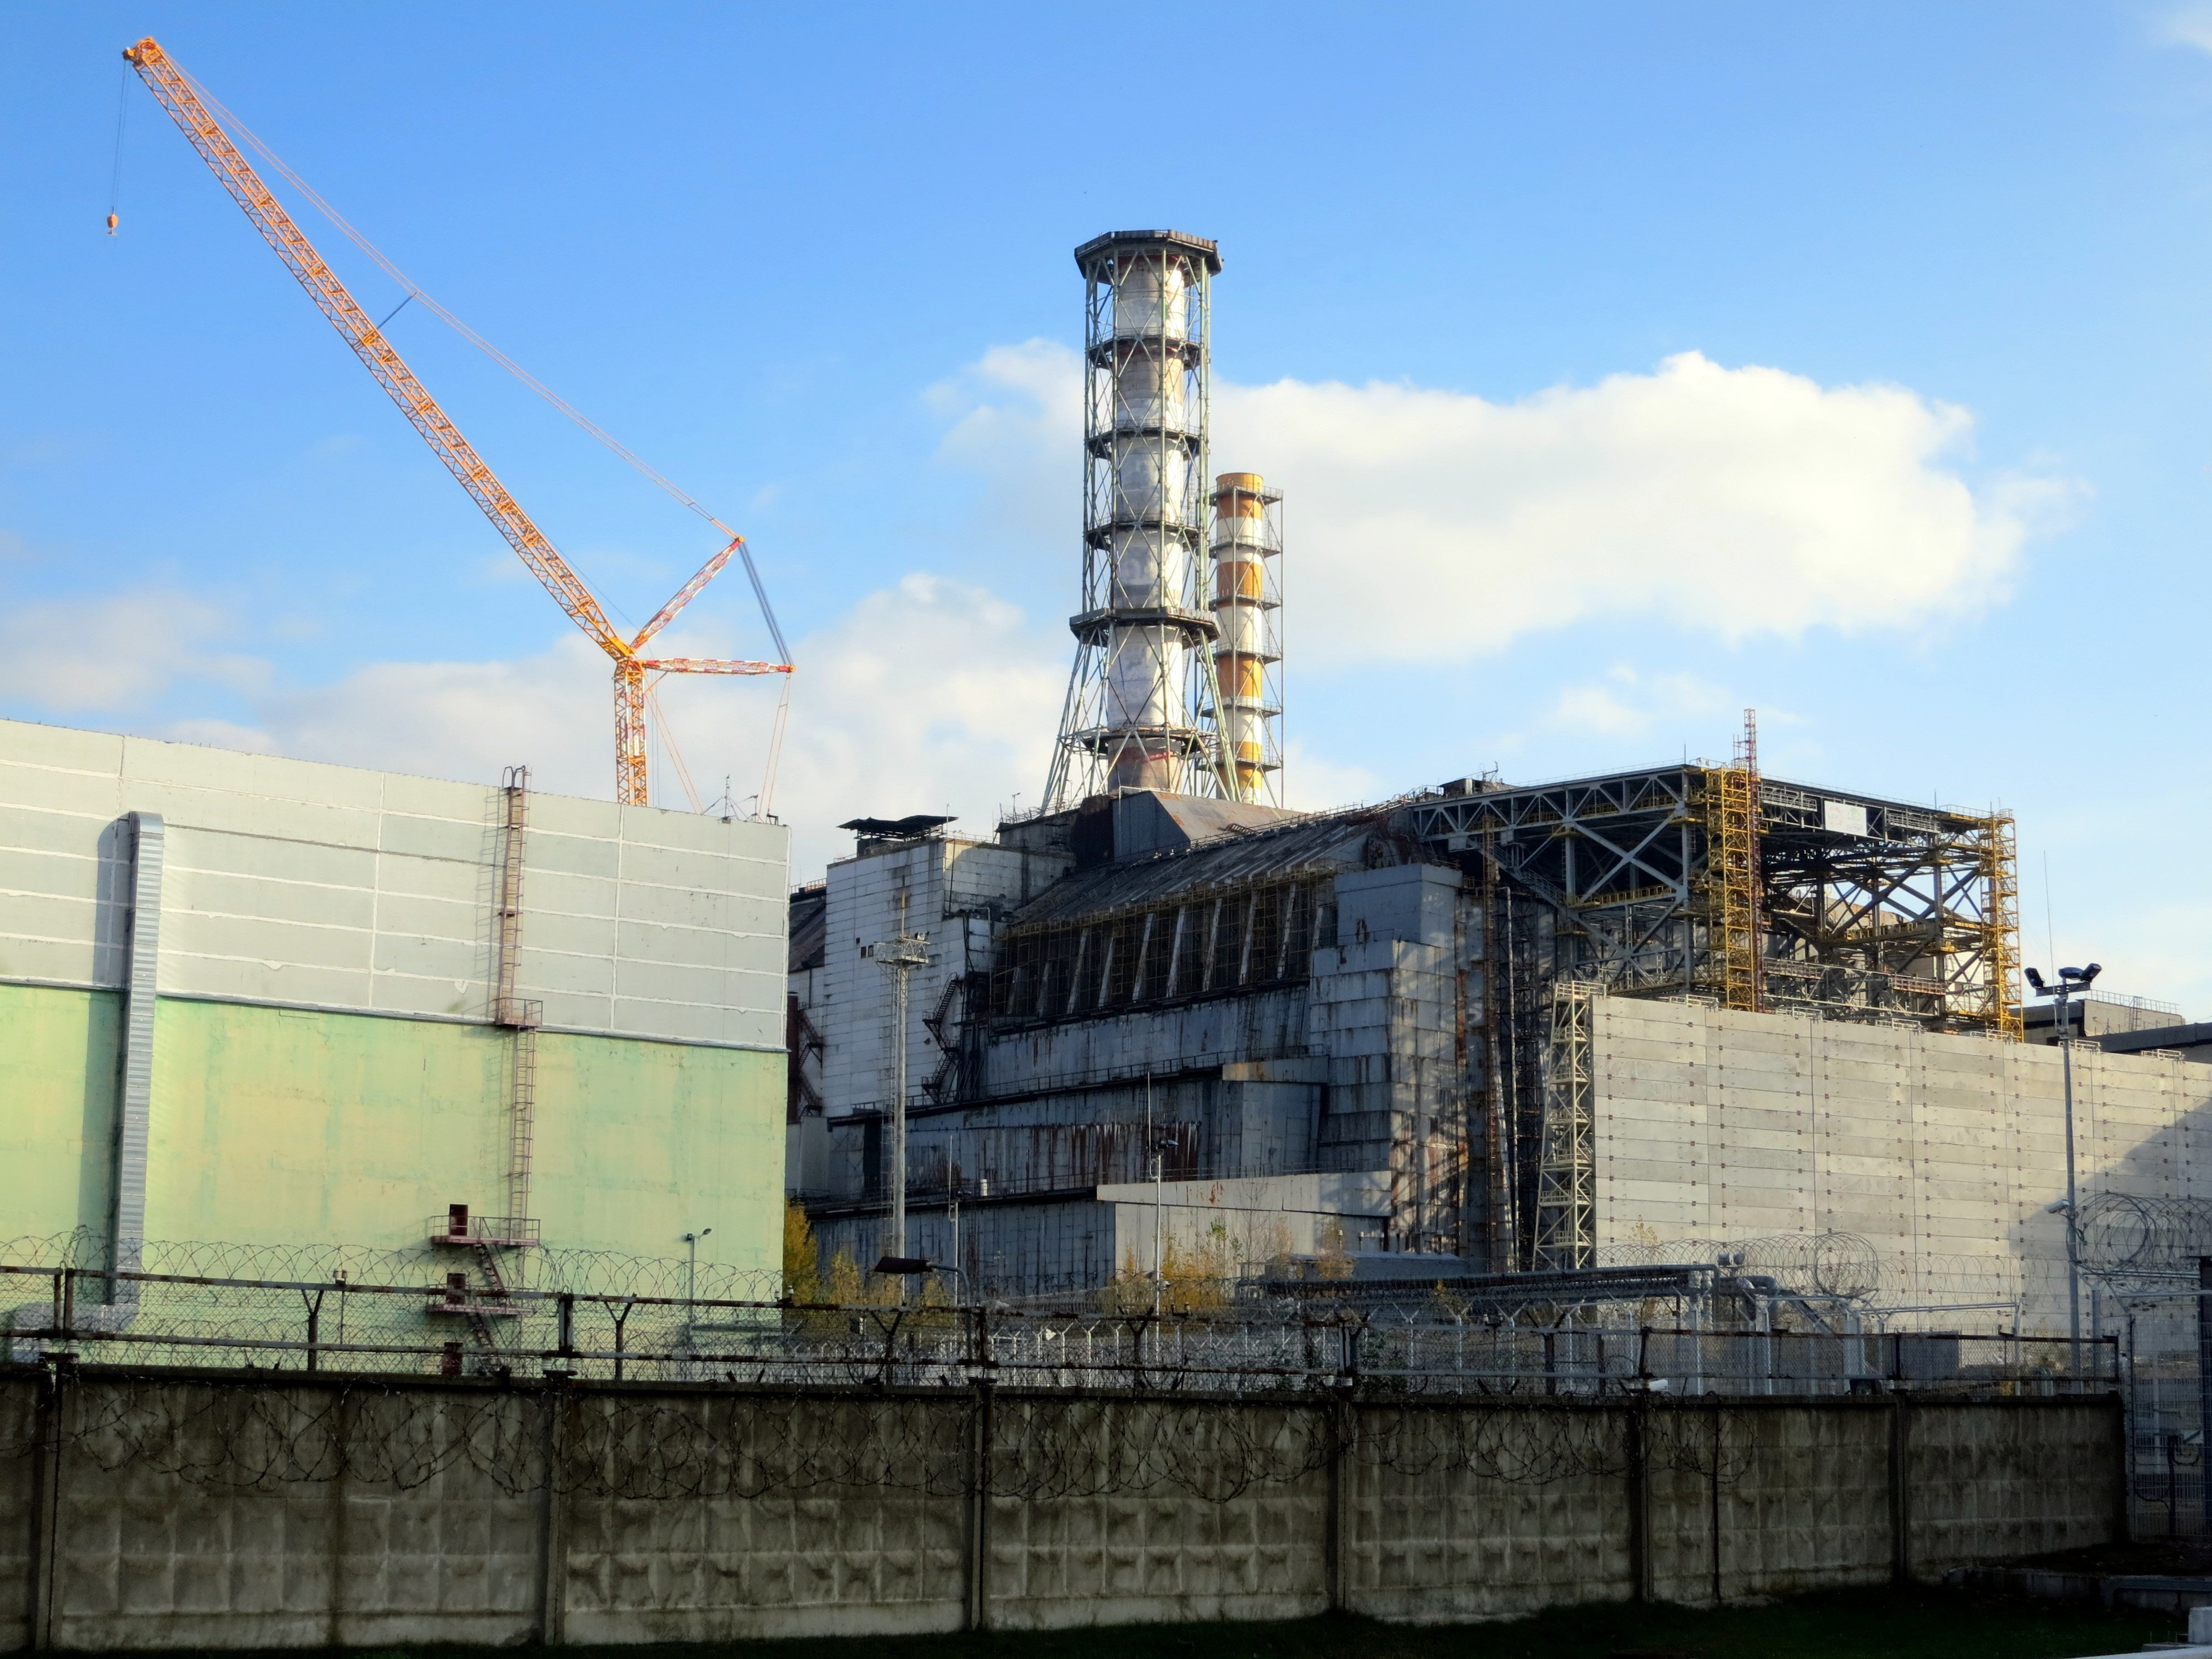 Residual radiation at Chernobyl persists because the blast was more massive and took place on the ground.